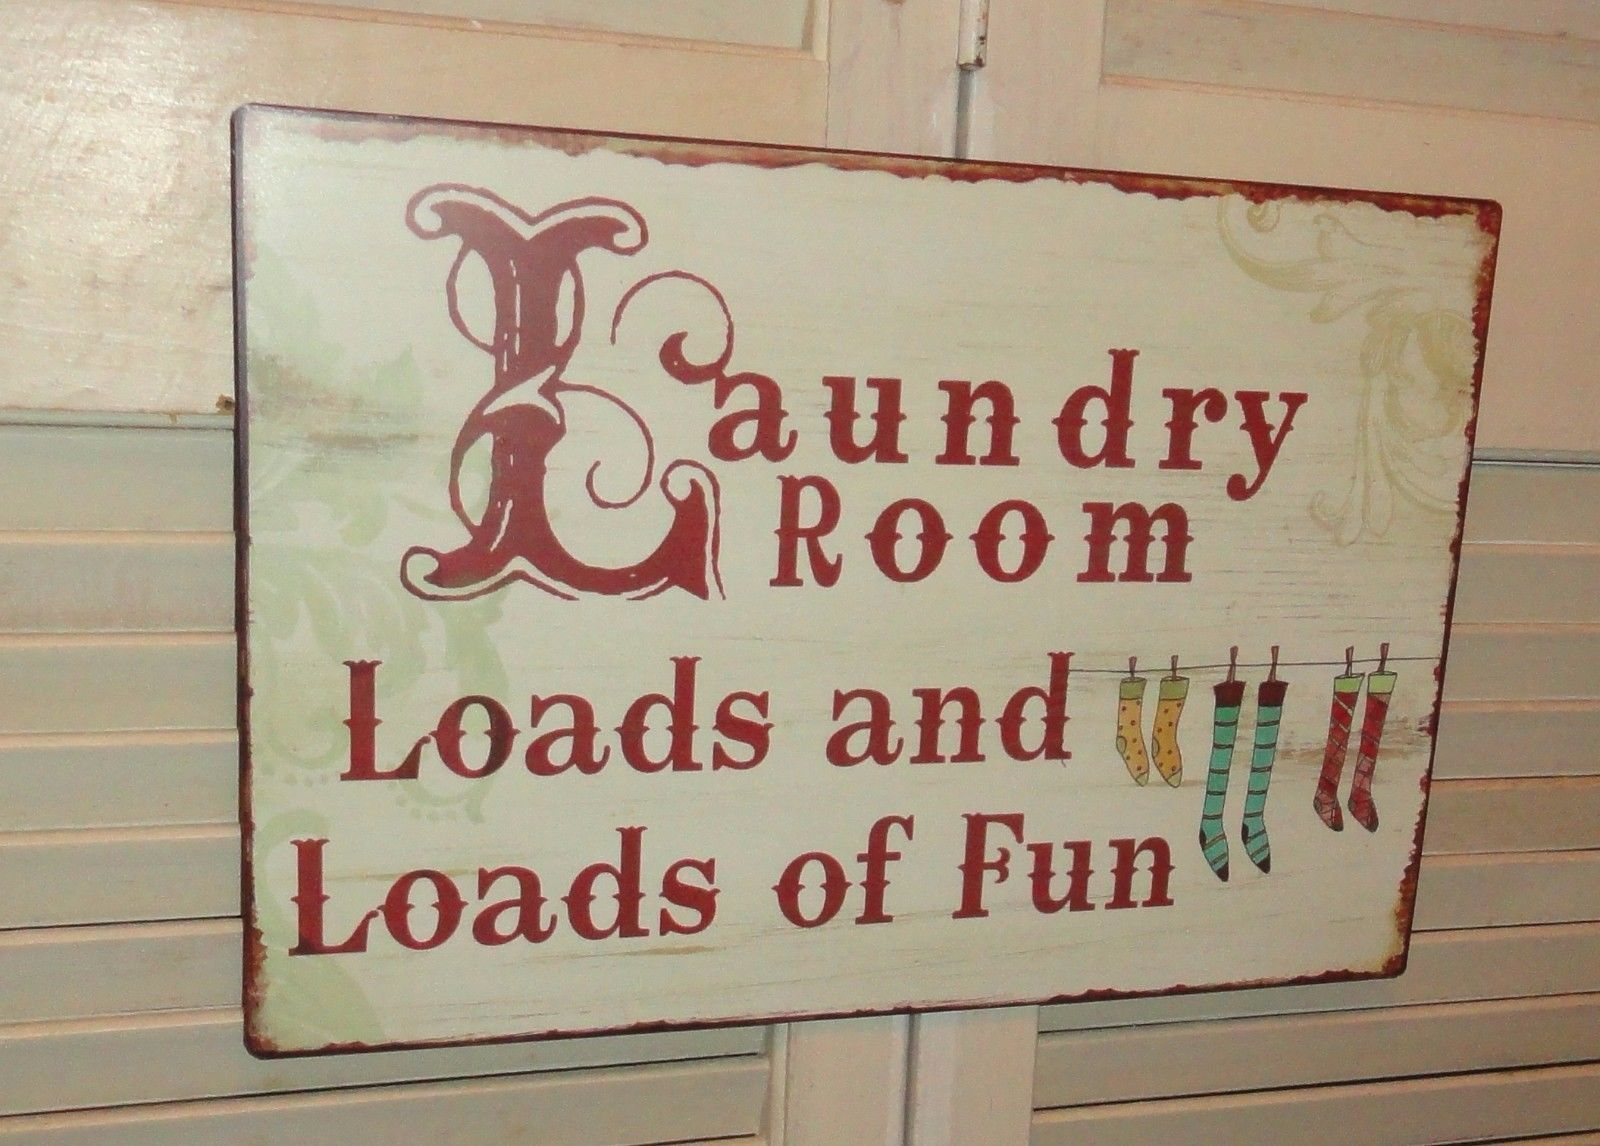 Wall Decor Signs For Home Cool Laundry Room Metal Sign Wall Decor Signs Home Decor Plaques And Inspiration